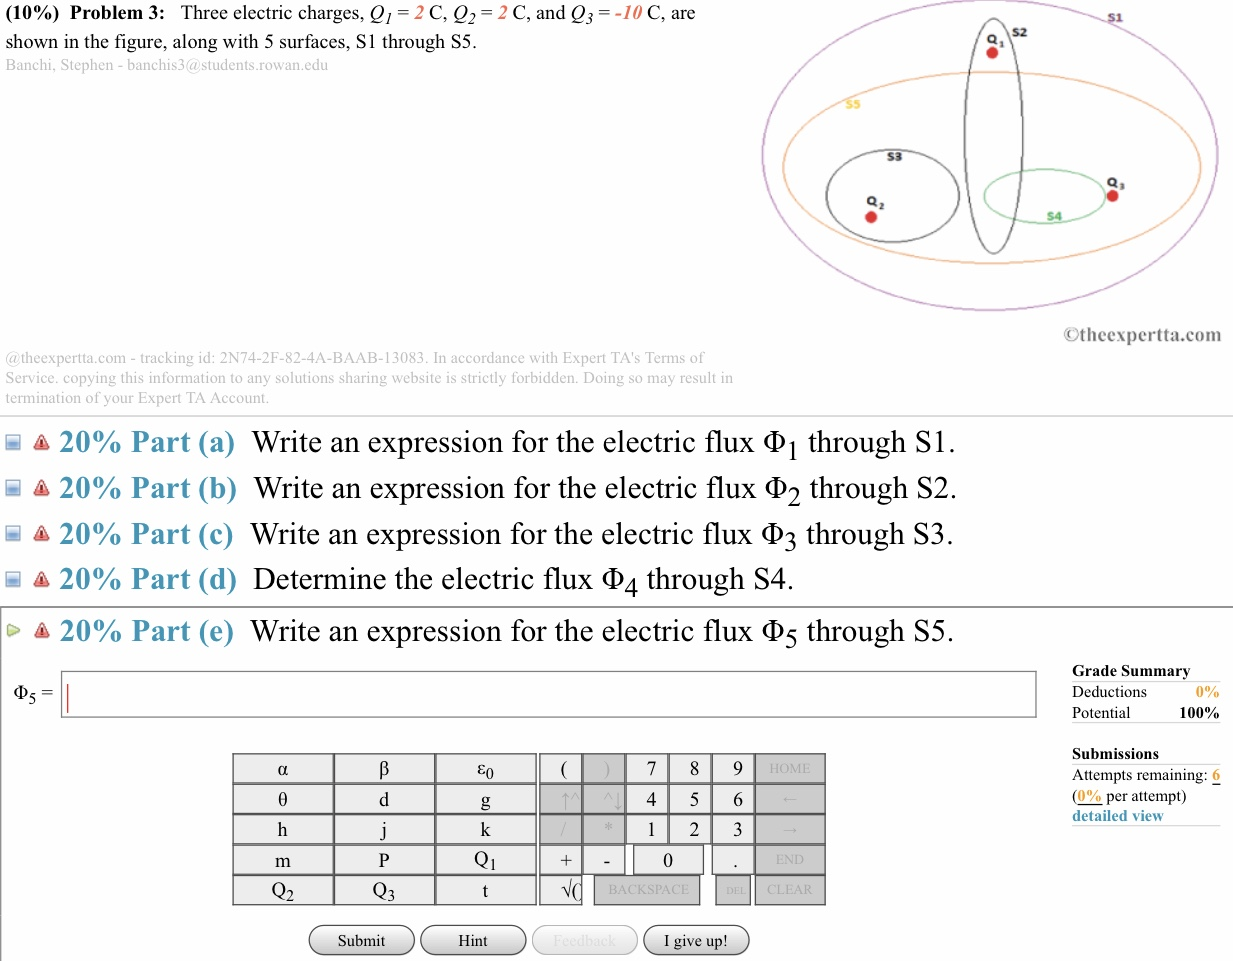 (10%) Problem 3: Three electric charges, Q1-2 C, Q2-2 C, and Q,--10 C, are shown in the figure, along with 5 surfaces, S1 through S5. Banchi, Stephen- banchis3@students.rowan.edu S2 53 Otheexpertta.com @ theexpertta.com - tracking id: 2N74-2F-82-4A-BAAB-13083. In accordance with Expert TA's Terms of Service. copying this information to any solutions sharing website is strictly forbidden. Doing so may result in termination of your Expert TA Account -là 20% Part (a) Write an expression for the electric flux Φ 1 through SI Δ 20% Part (b) Write an expression for the electric flux through S2. 20% Part (c) Write an expression for the electric flux ФЗ through S3 20% Part (d) Determine the electric flux Φ4 through S4. 20% Part (e) Write an expression for the electric flux Φ5 through S5 Grade Summary Deductions Potential 0% 100% Submissions Attempts remaining: 6 (0%0 per attempt) detailed view IOMI 4 5 6 Q1 BACKSPACE CLEAR Submit Hint I give up!